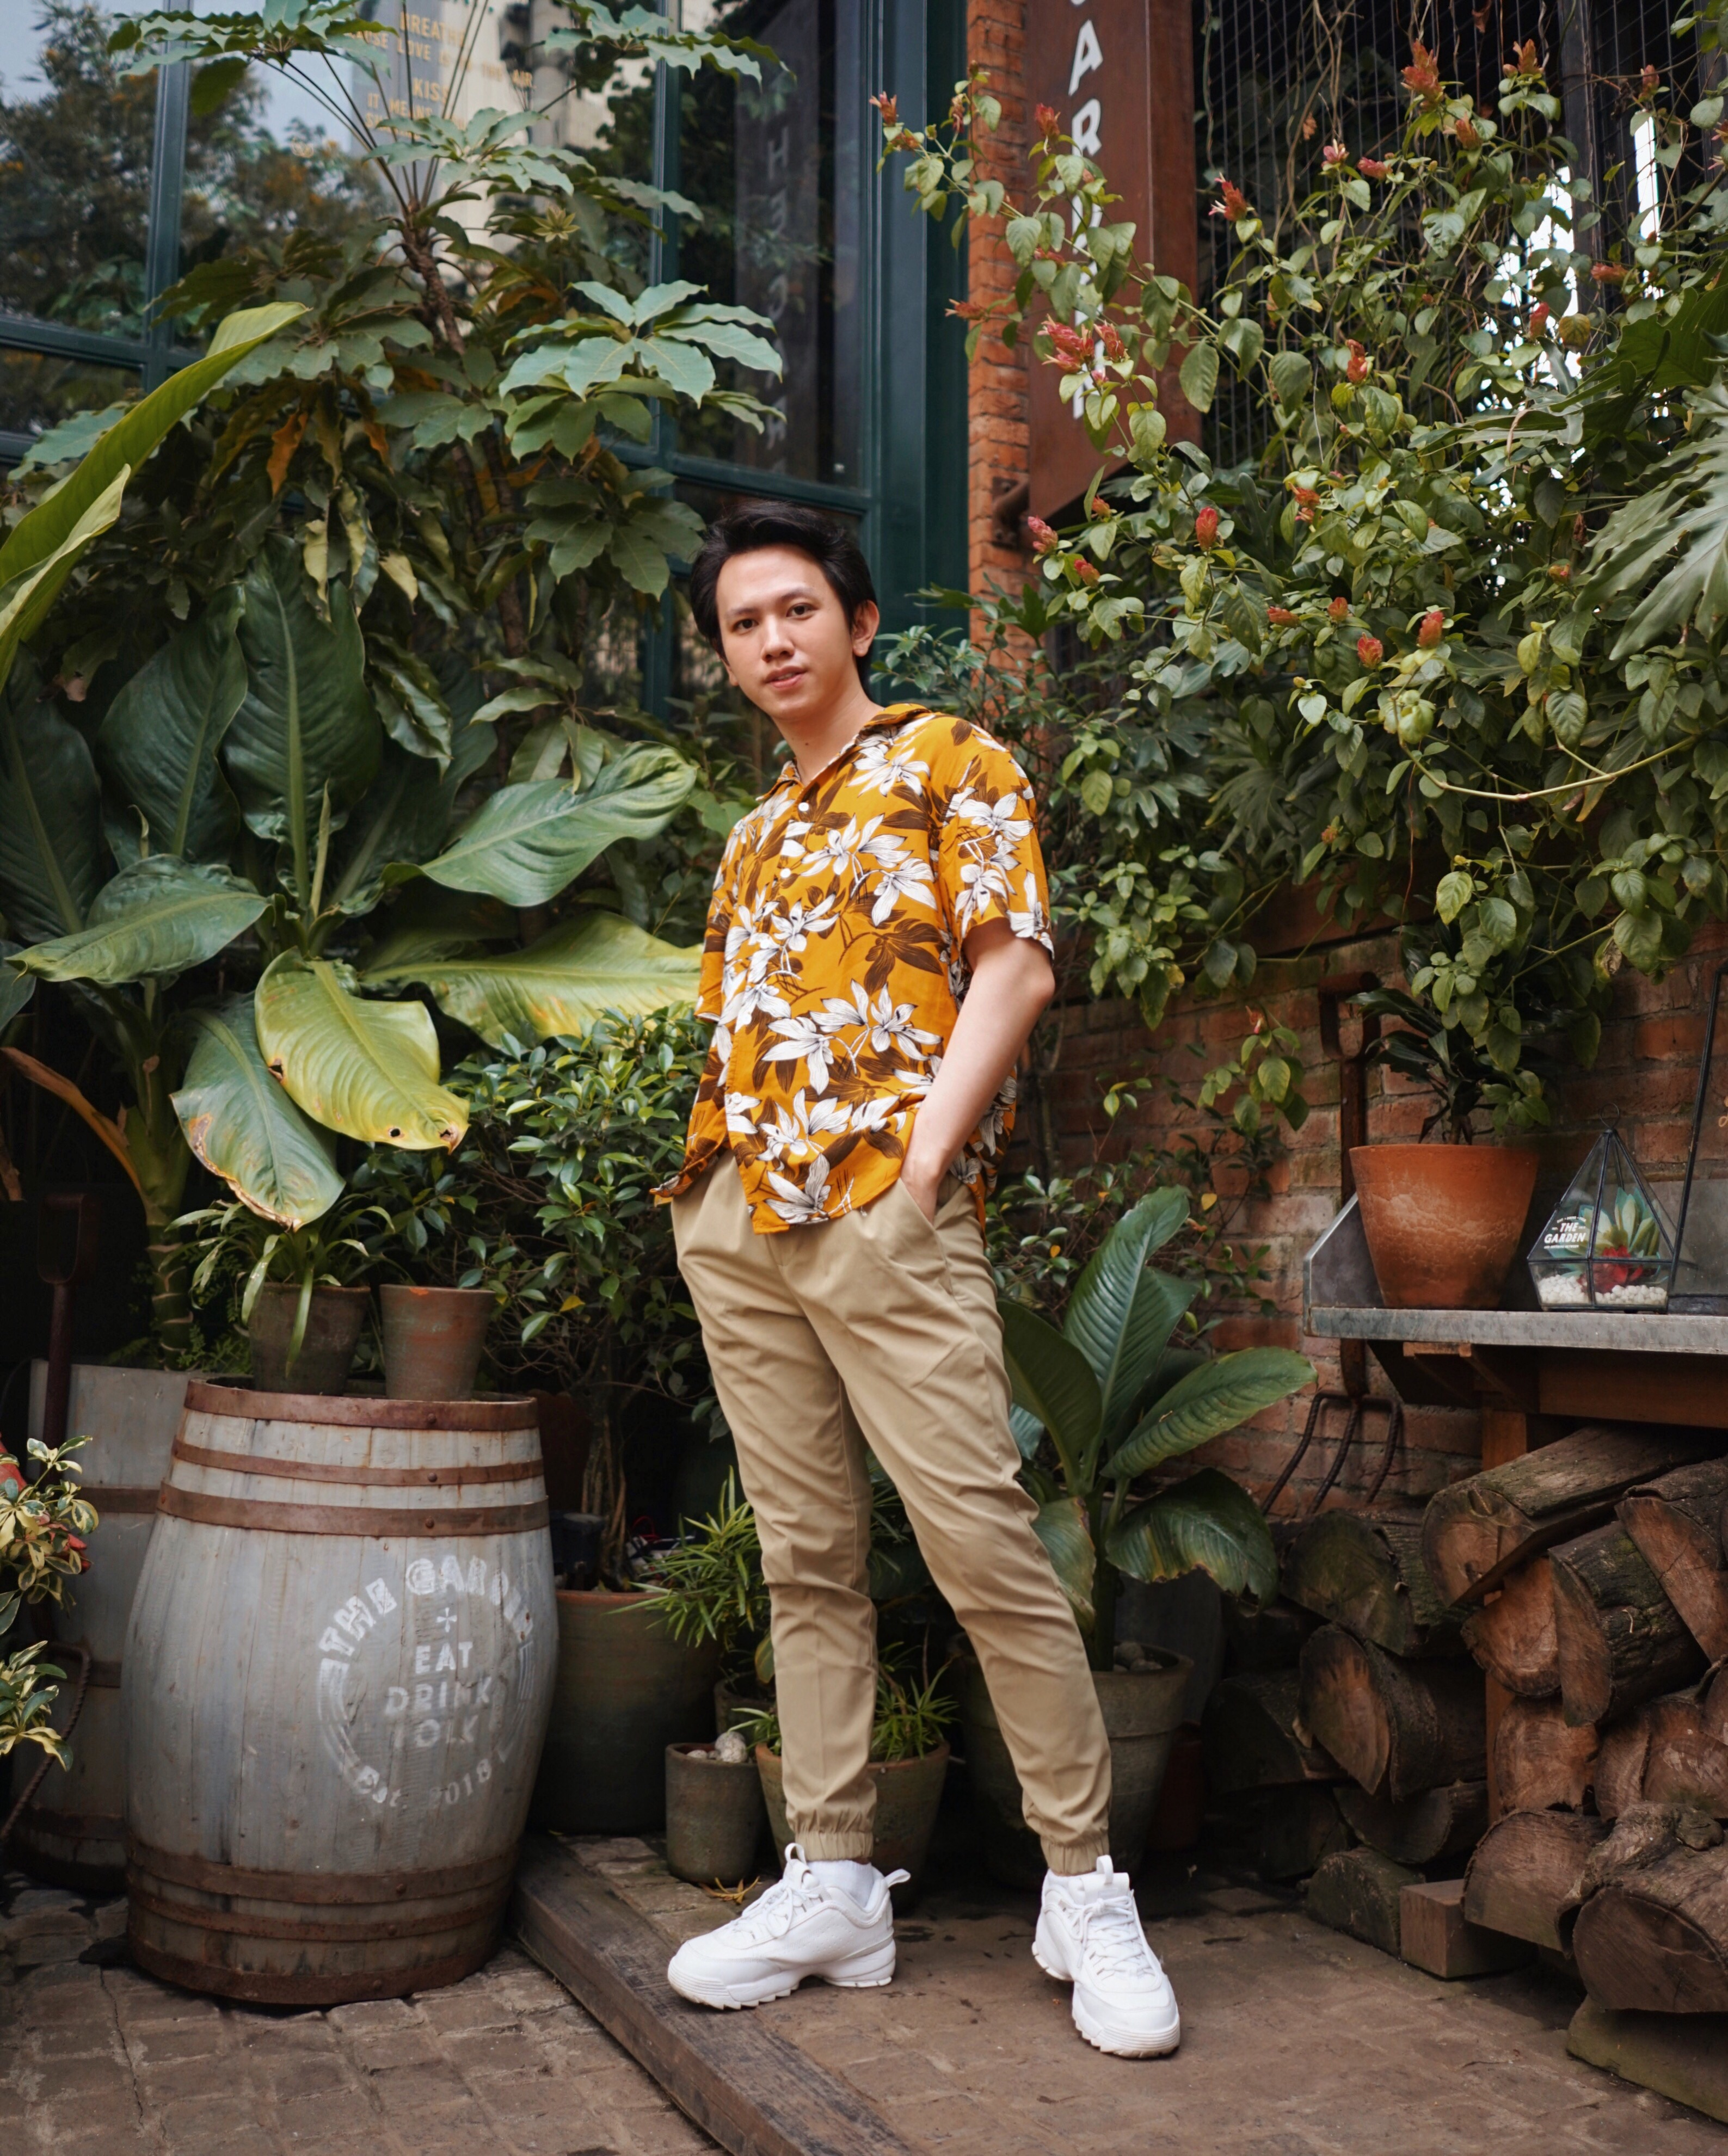 how to style your floral prints printed shirts hendra Wijaya fashion influencer blogger social media iamhendraw instagram